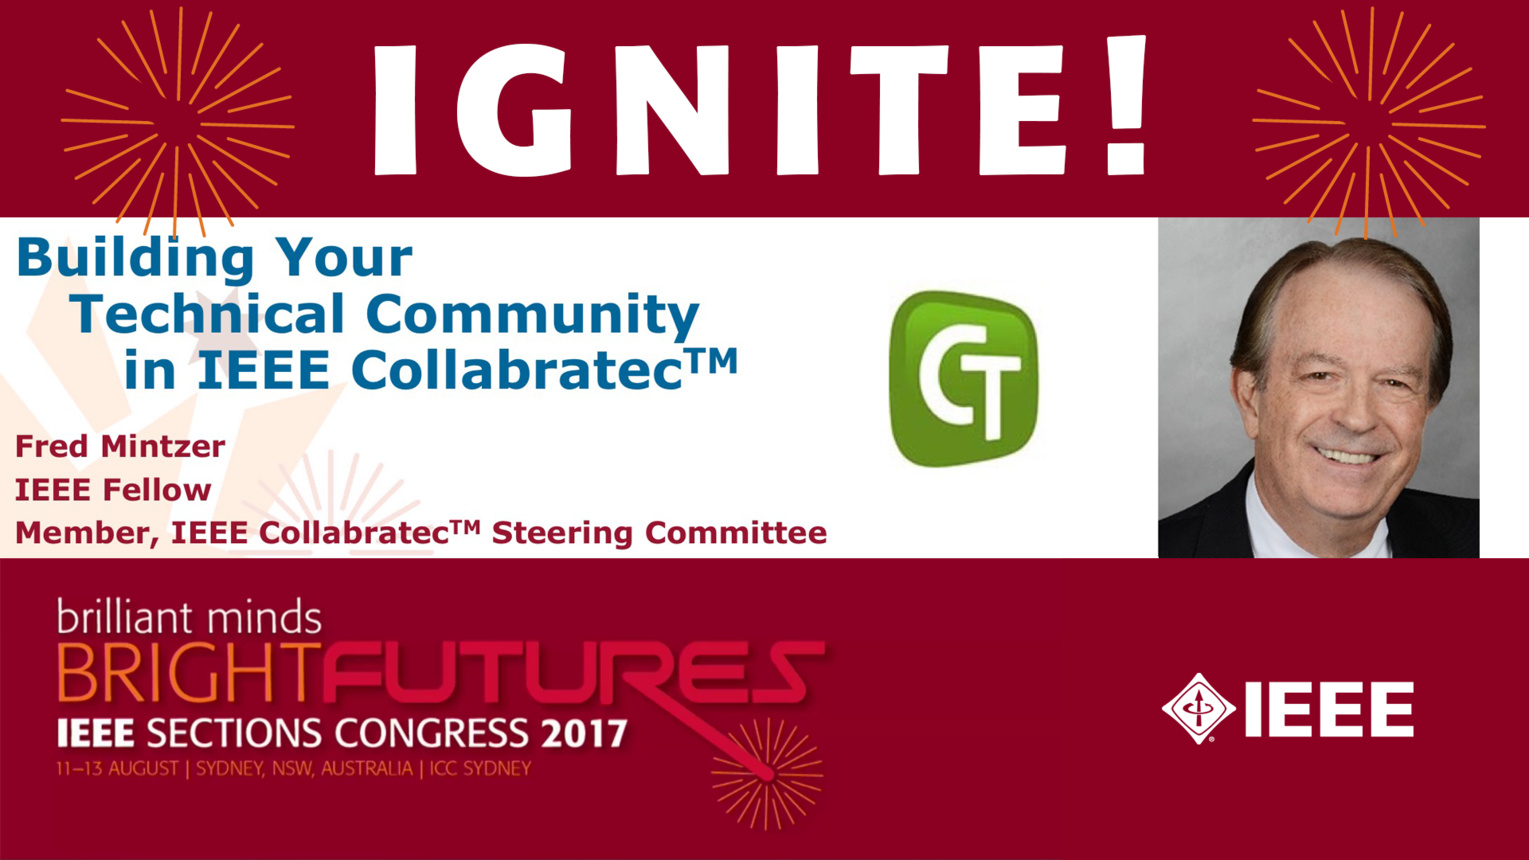 Building Your Technical Community in IEEE Collabratec - Fred Mintzer - Ignite: Sections Congress 2017